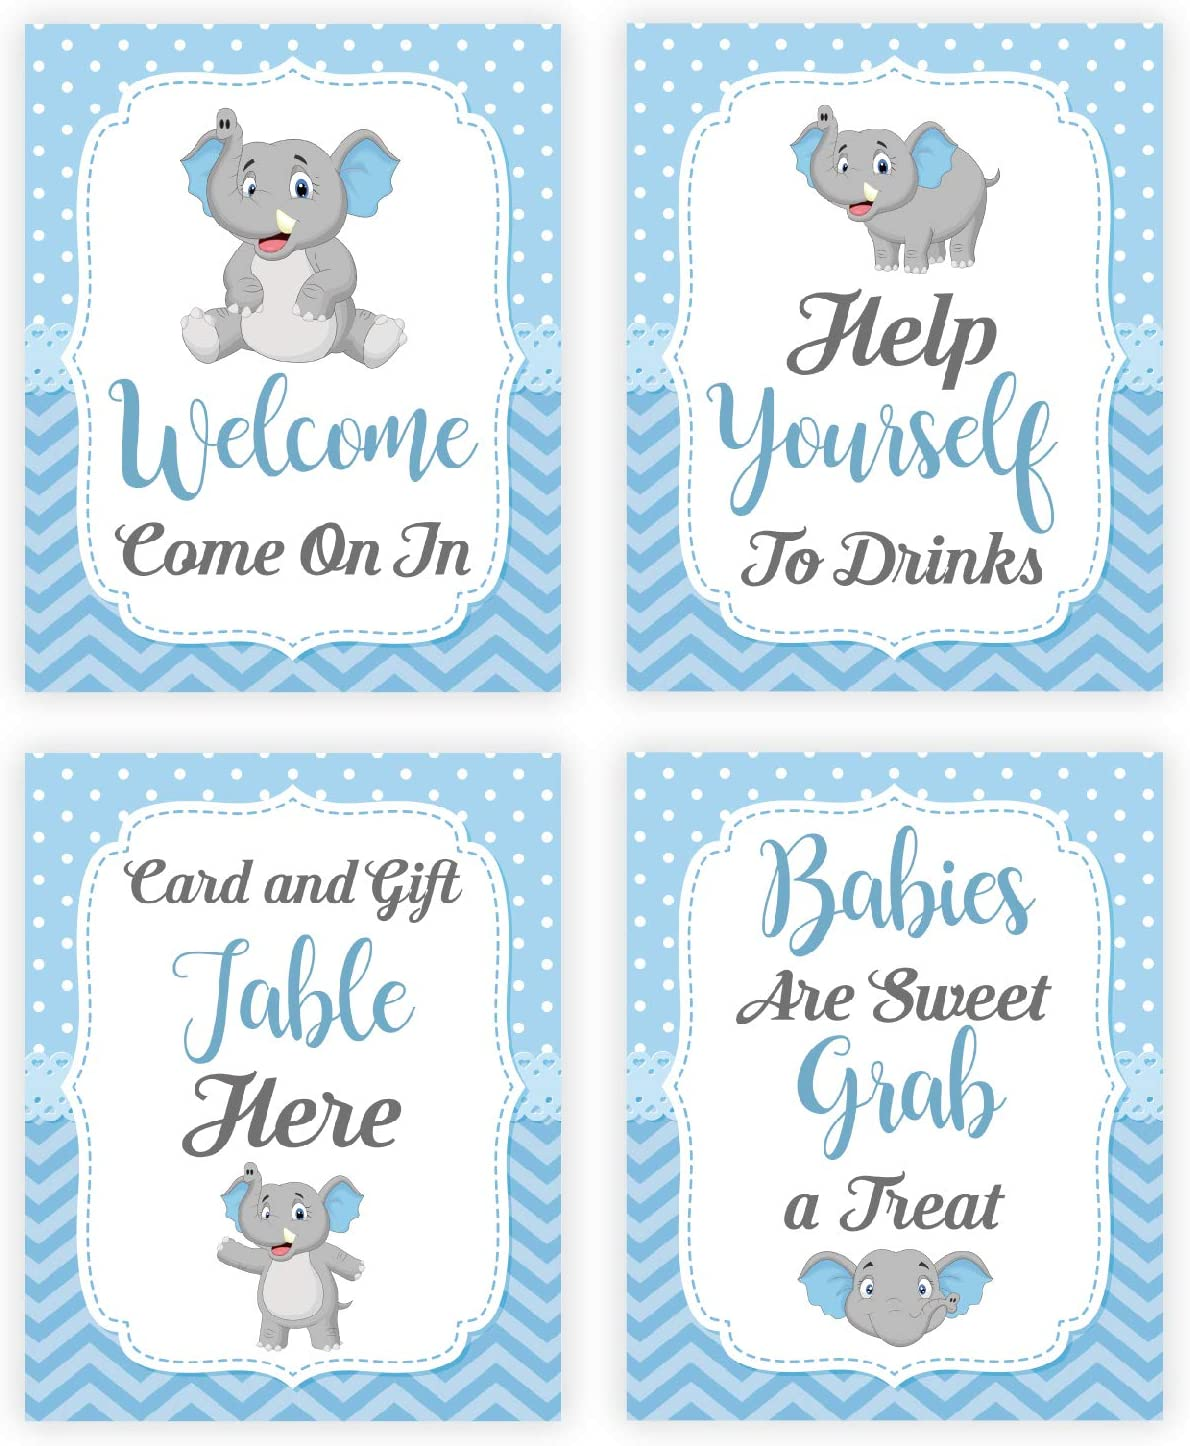 Baby Shower Table Decorations Signs, Blue Elephant Baby Shower Decorations for Boy, Centerpiece Decor Supplies for Boys, 4 Table Signs, 8X10 Inch [Unframed]